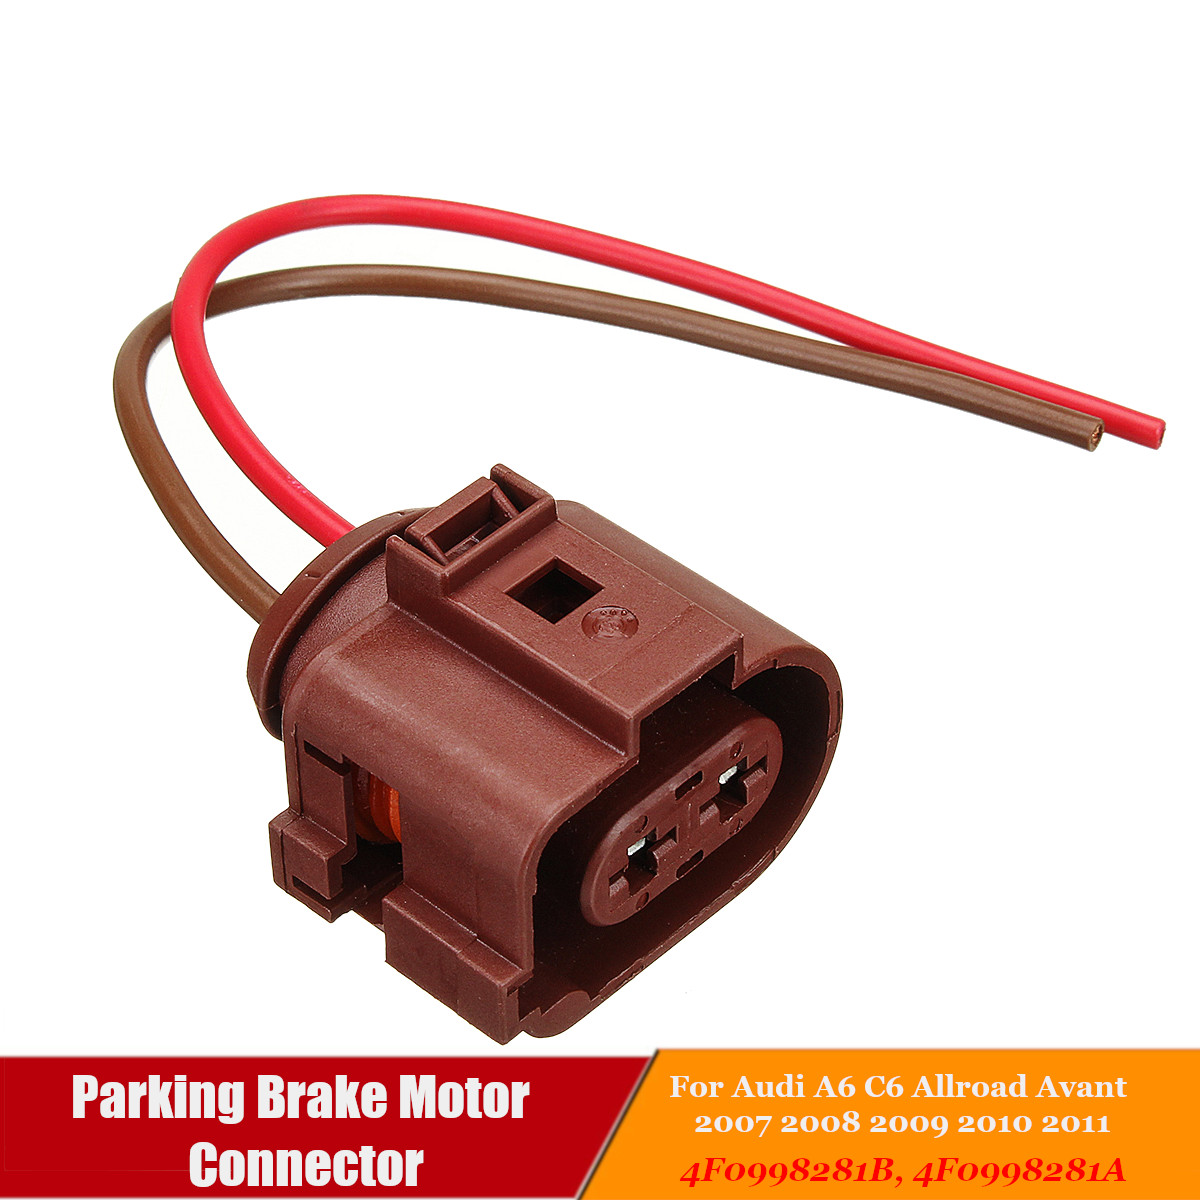 US $3.54 29% OFF|4F0998281B Car Parking ke Motor Wiring Harness Connector on